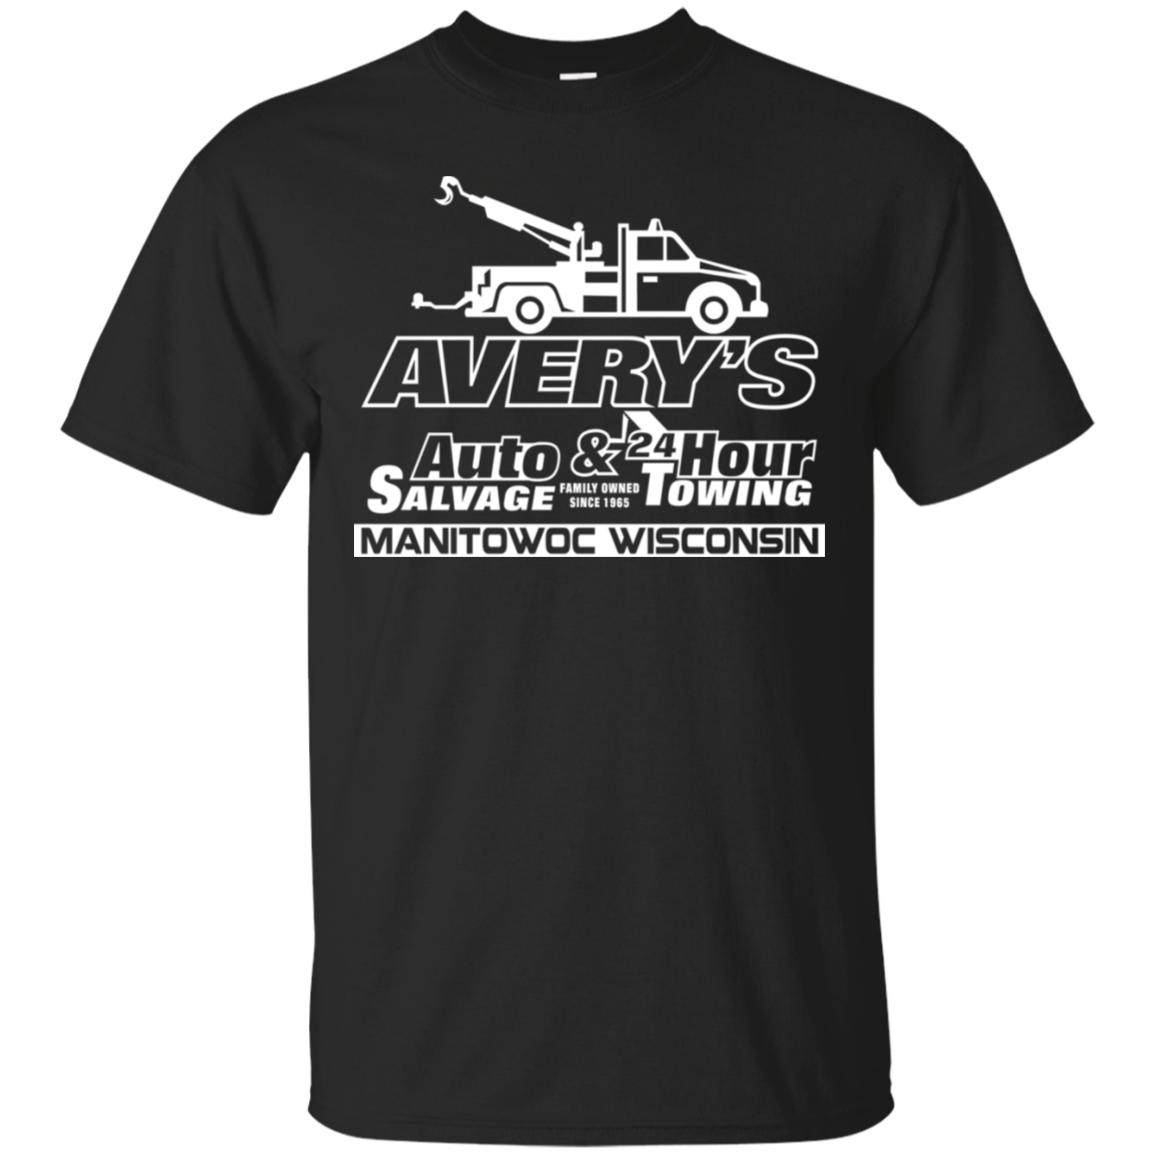 Avery's Auto Salvage & Towing T-Shirt